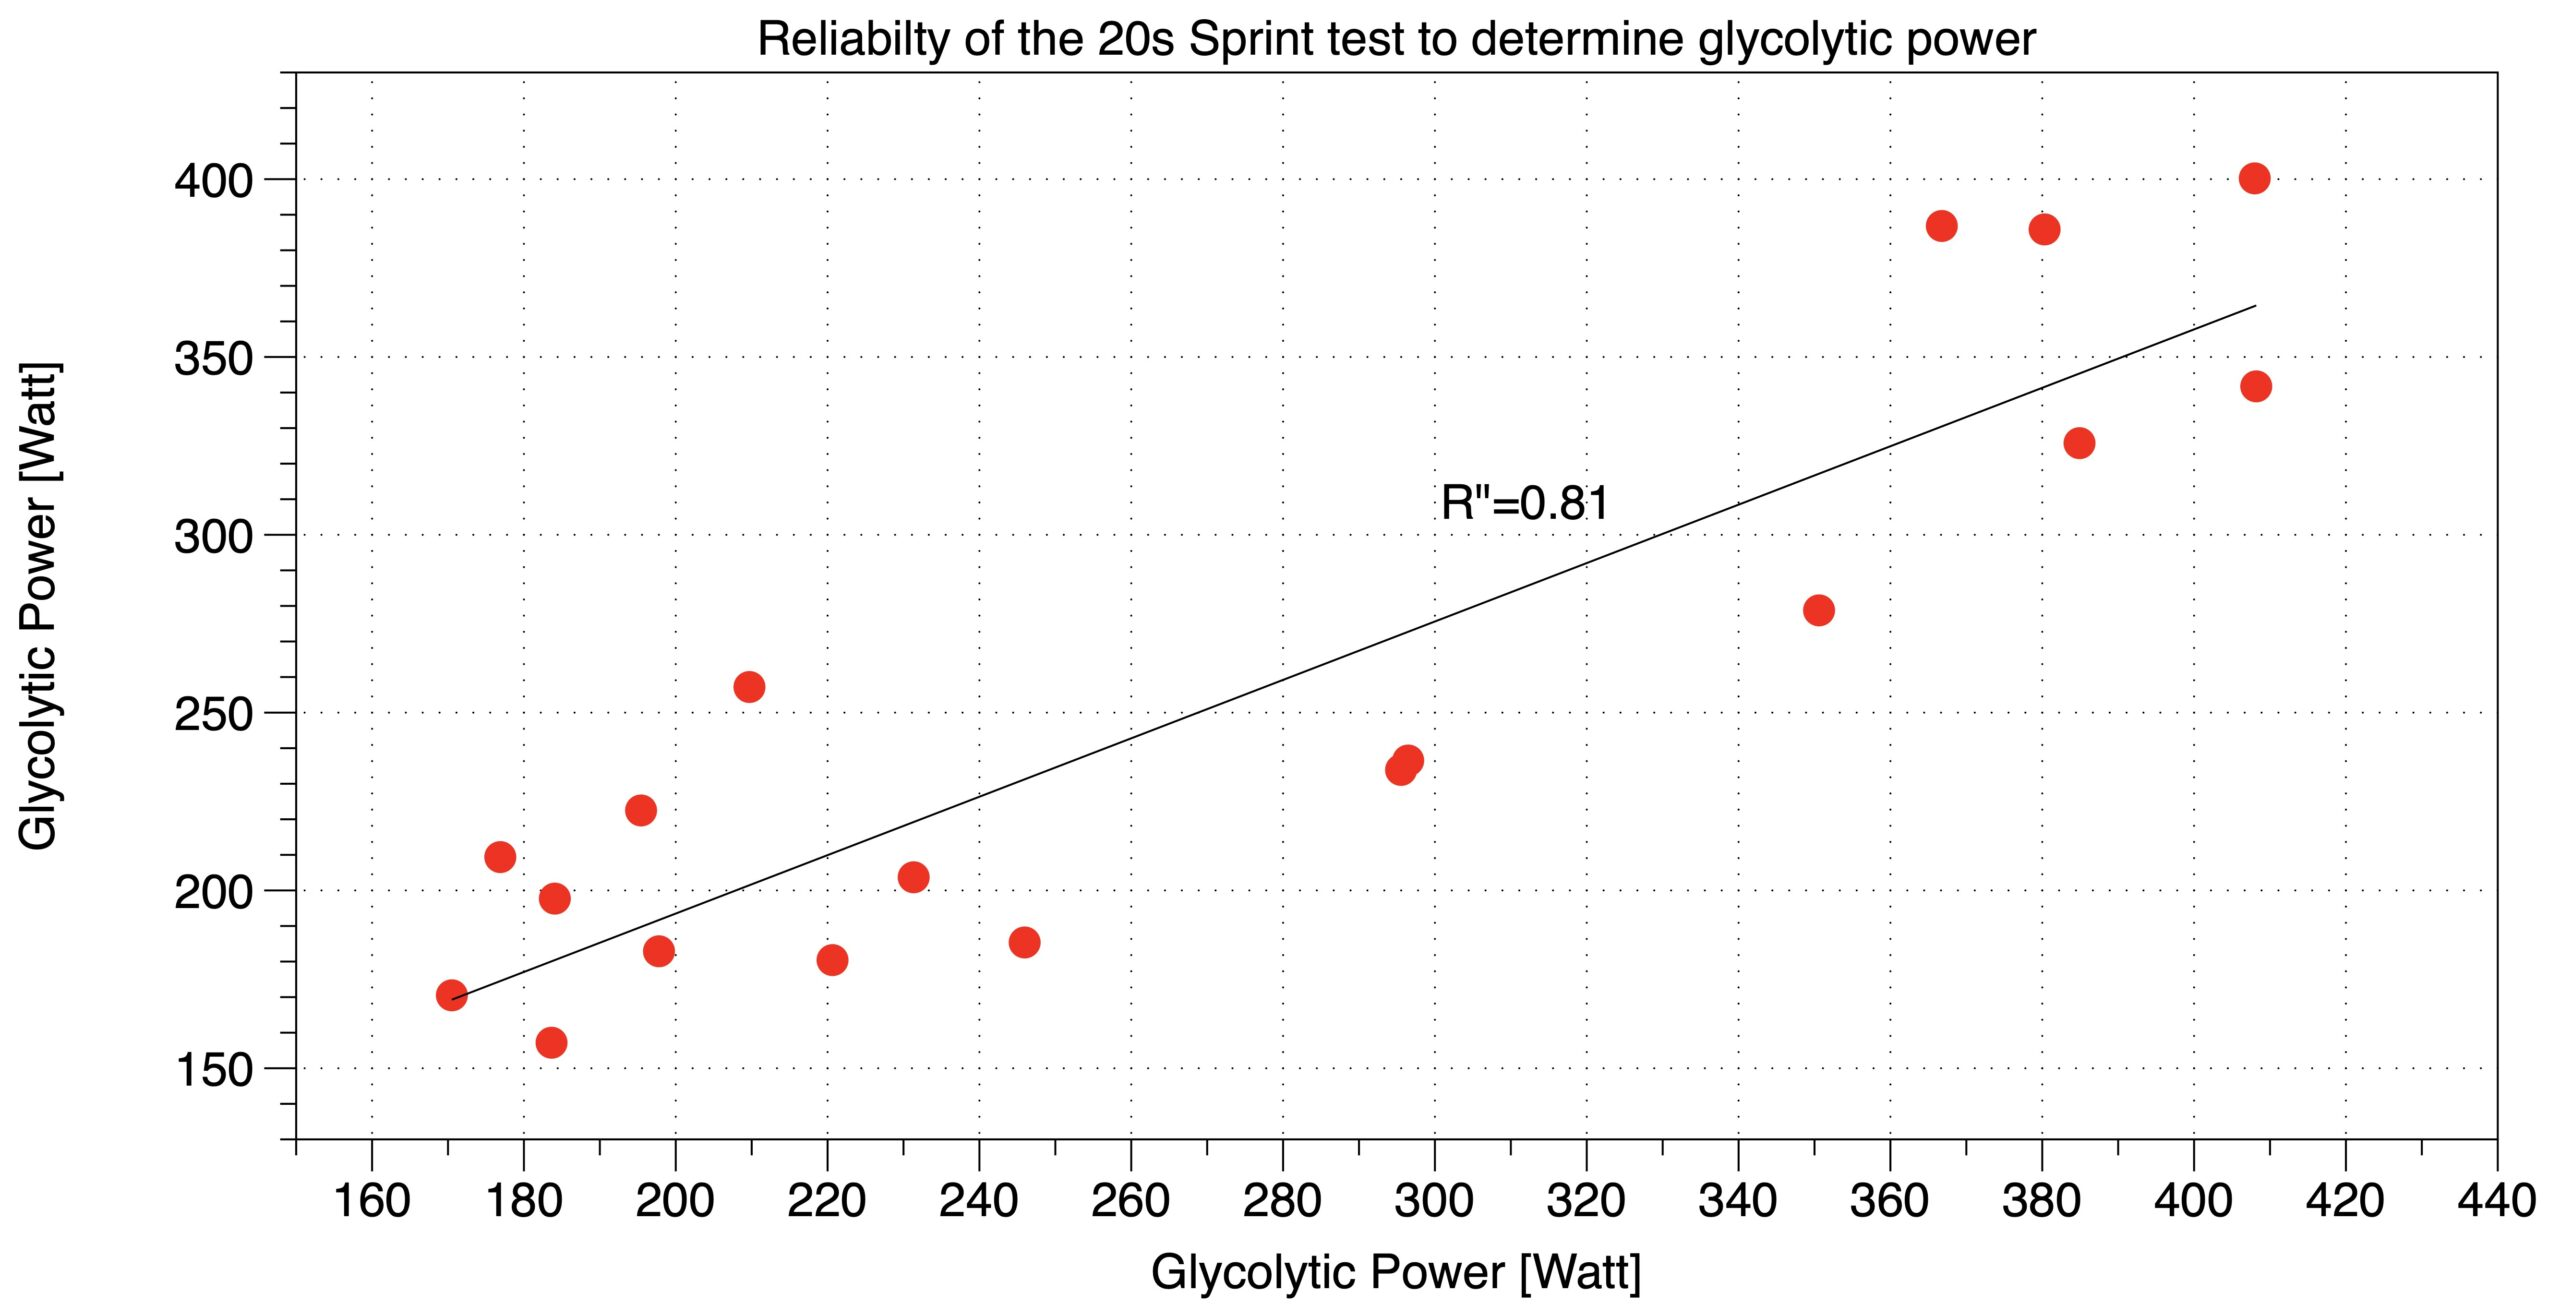 Reliability of the PPD-R results. Comparing PPD-R results of occasion 1 with occasion 2.